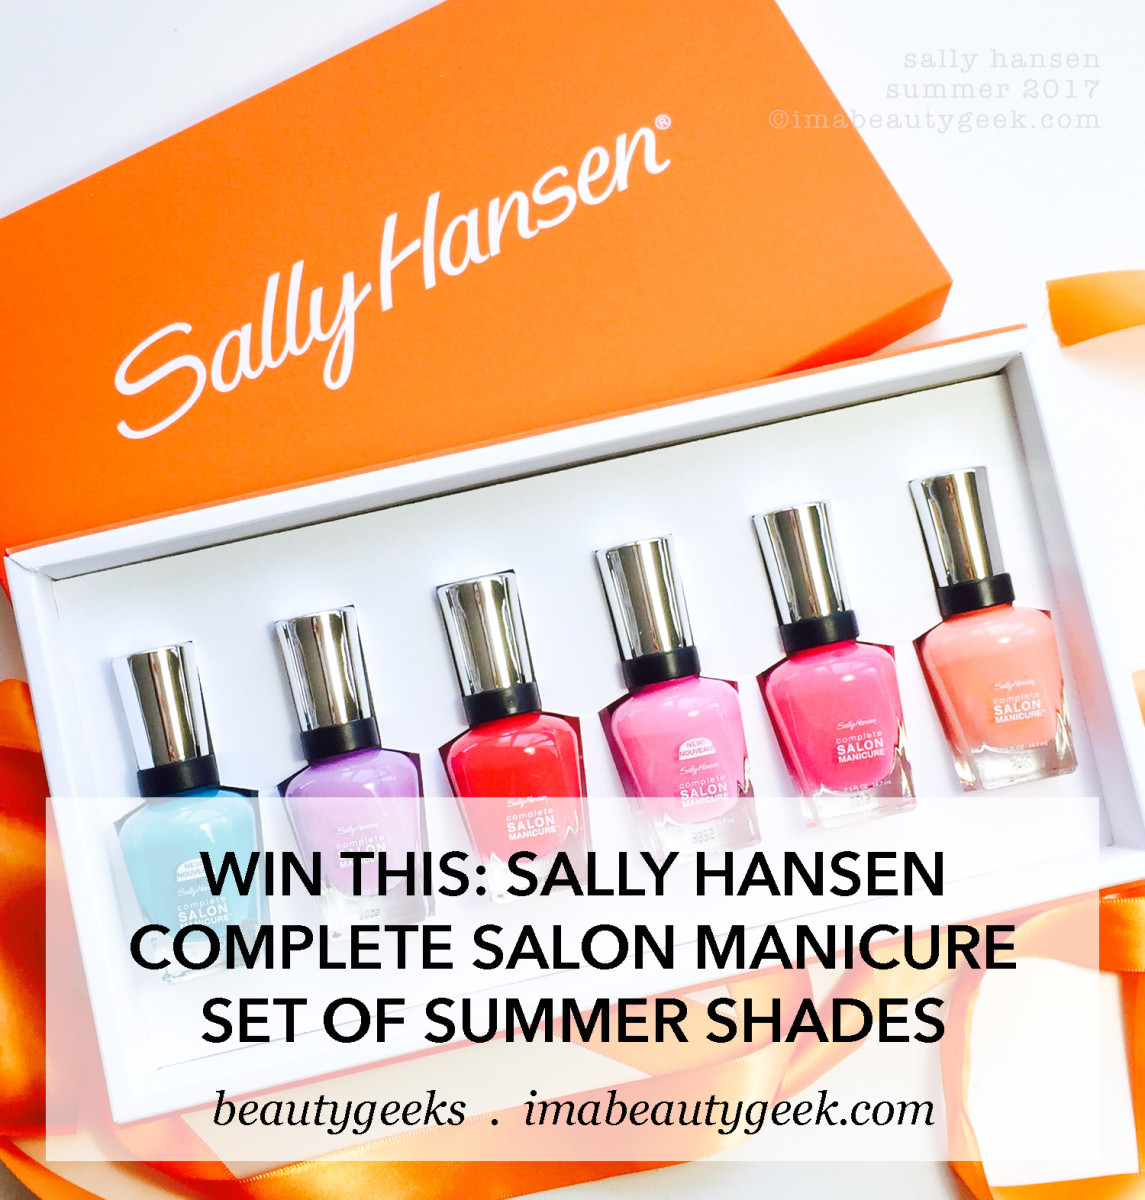 Sally Hansen Complete Salon Manicure set of summer shades 2017: WIN THIS!